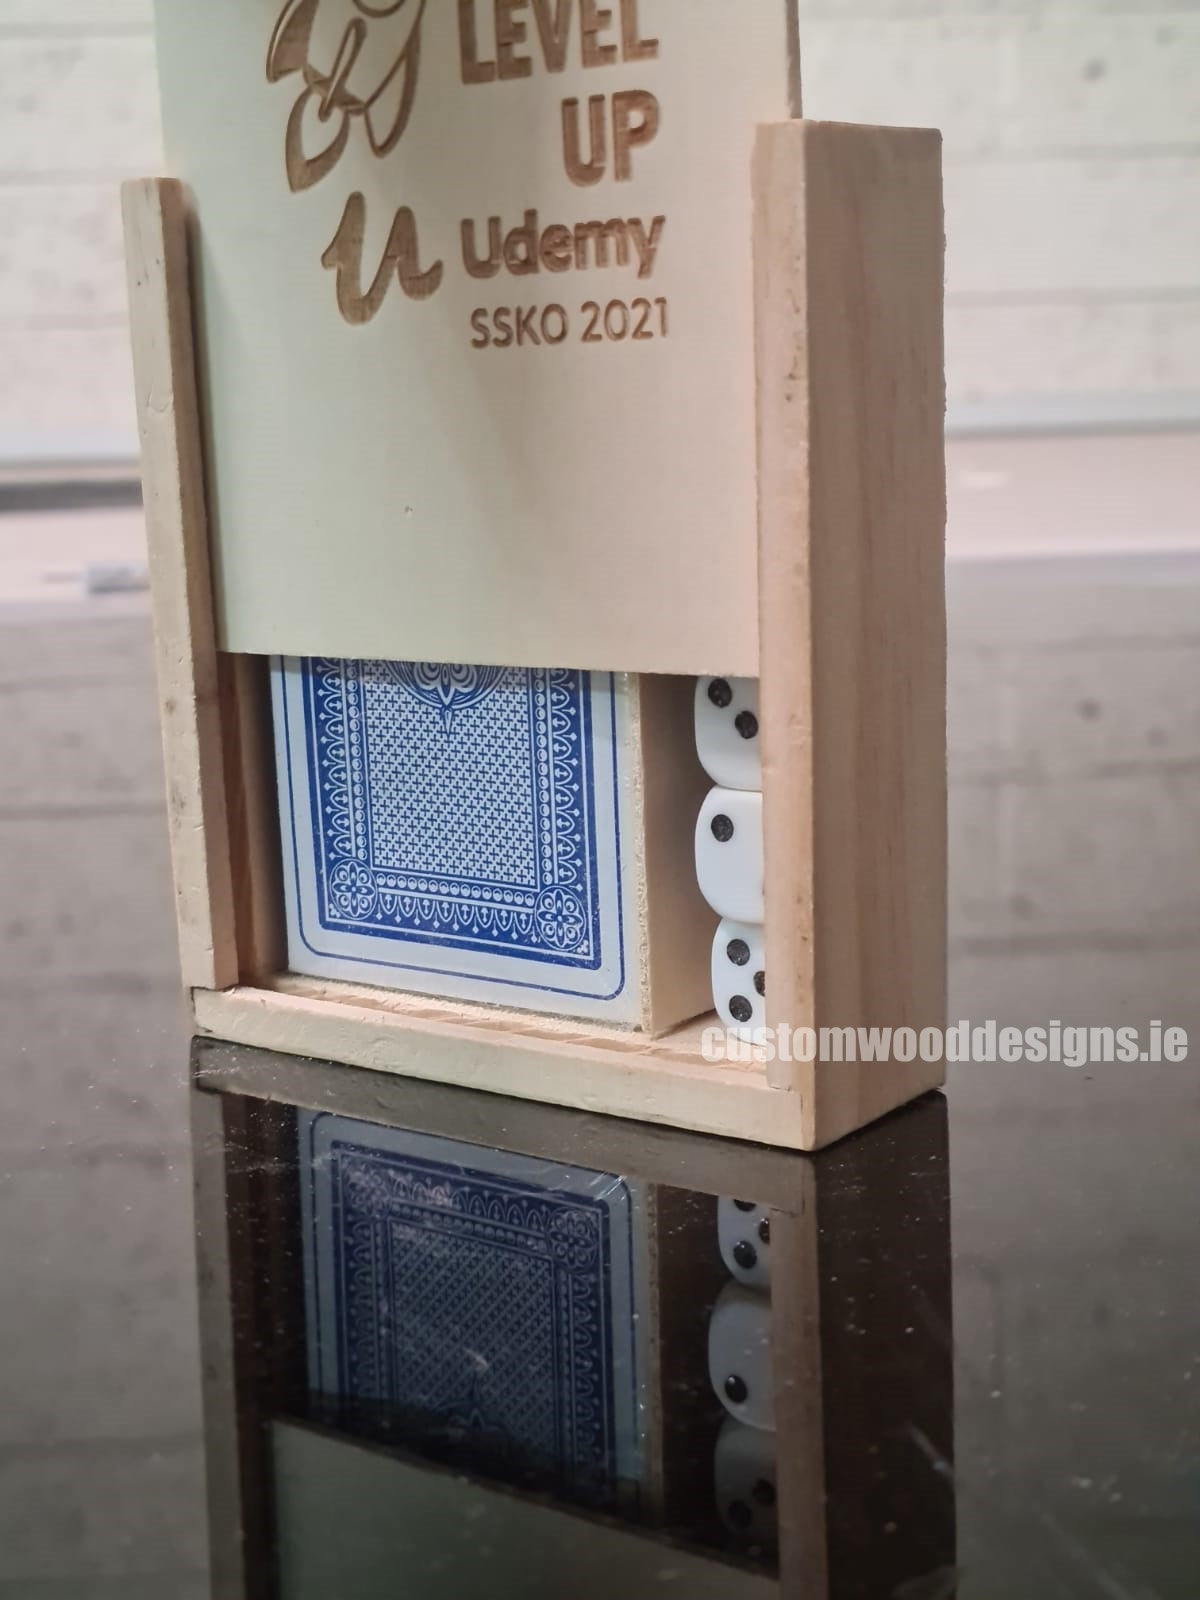 SWAG gifting ideas Corporate gifting ireland sustainable corporate gifts custom wood designs StrideXM